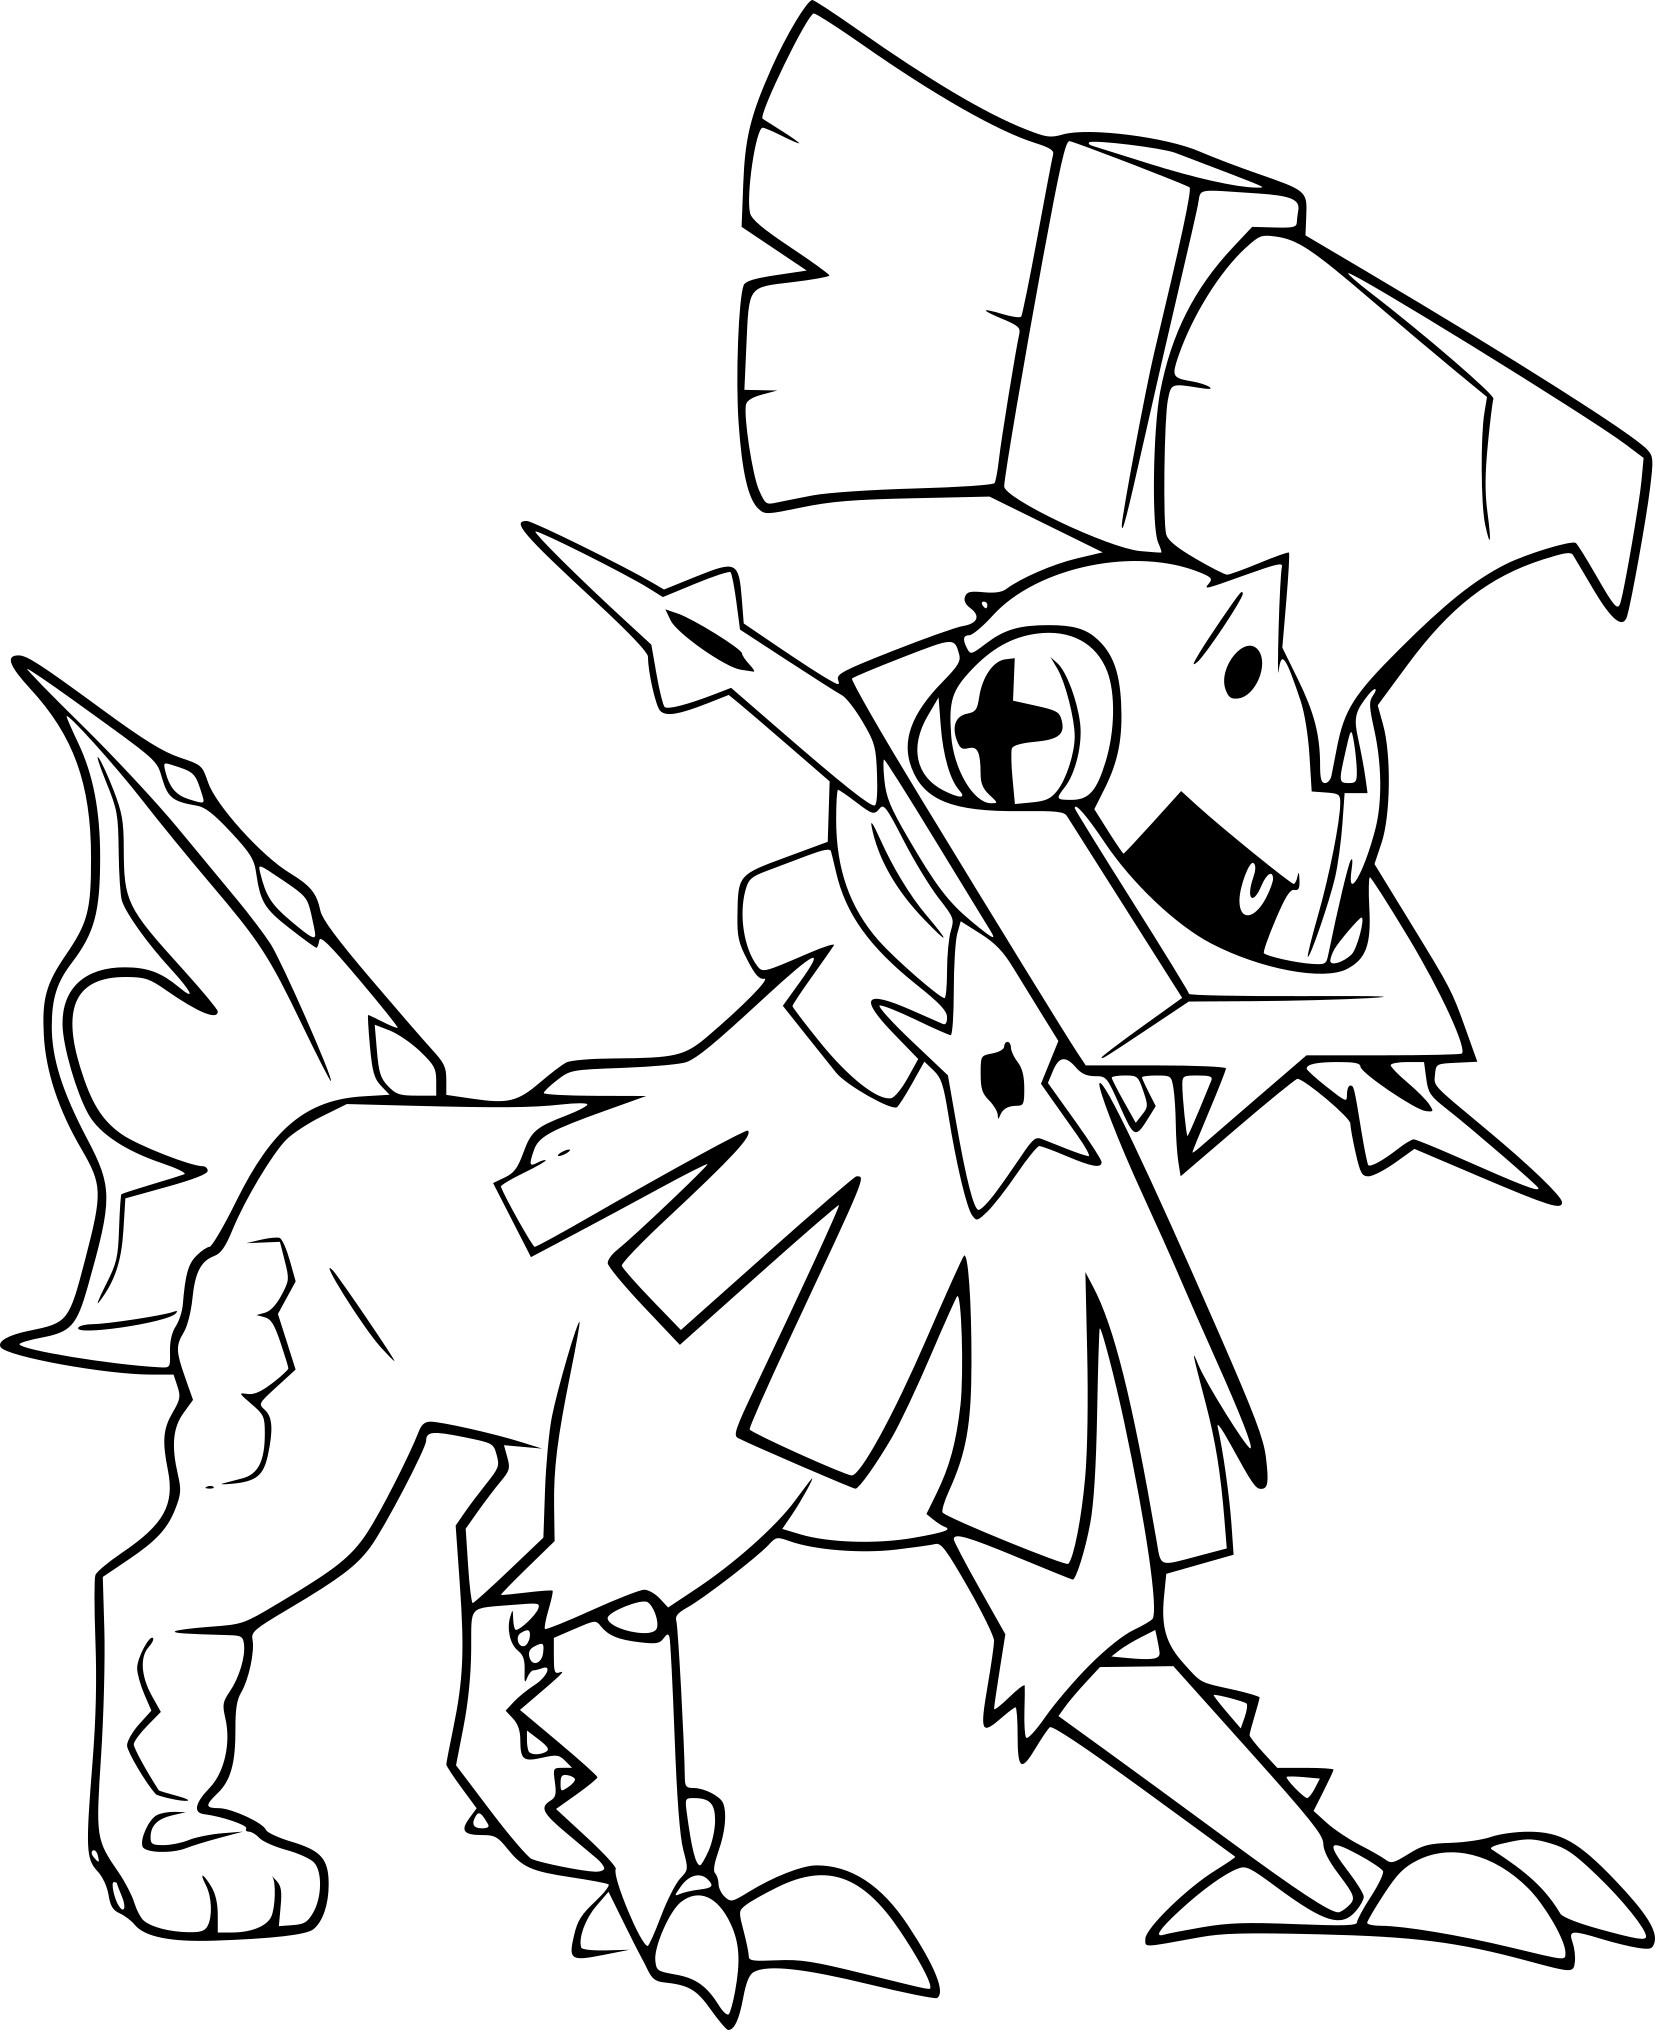 Coloriage type 0 pokemon imprimer - Dessins de pokemon ...